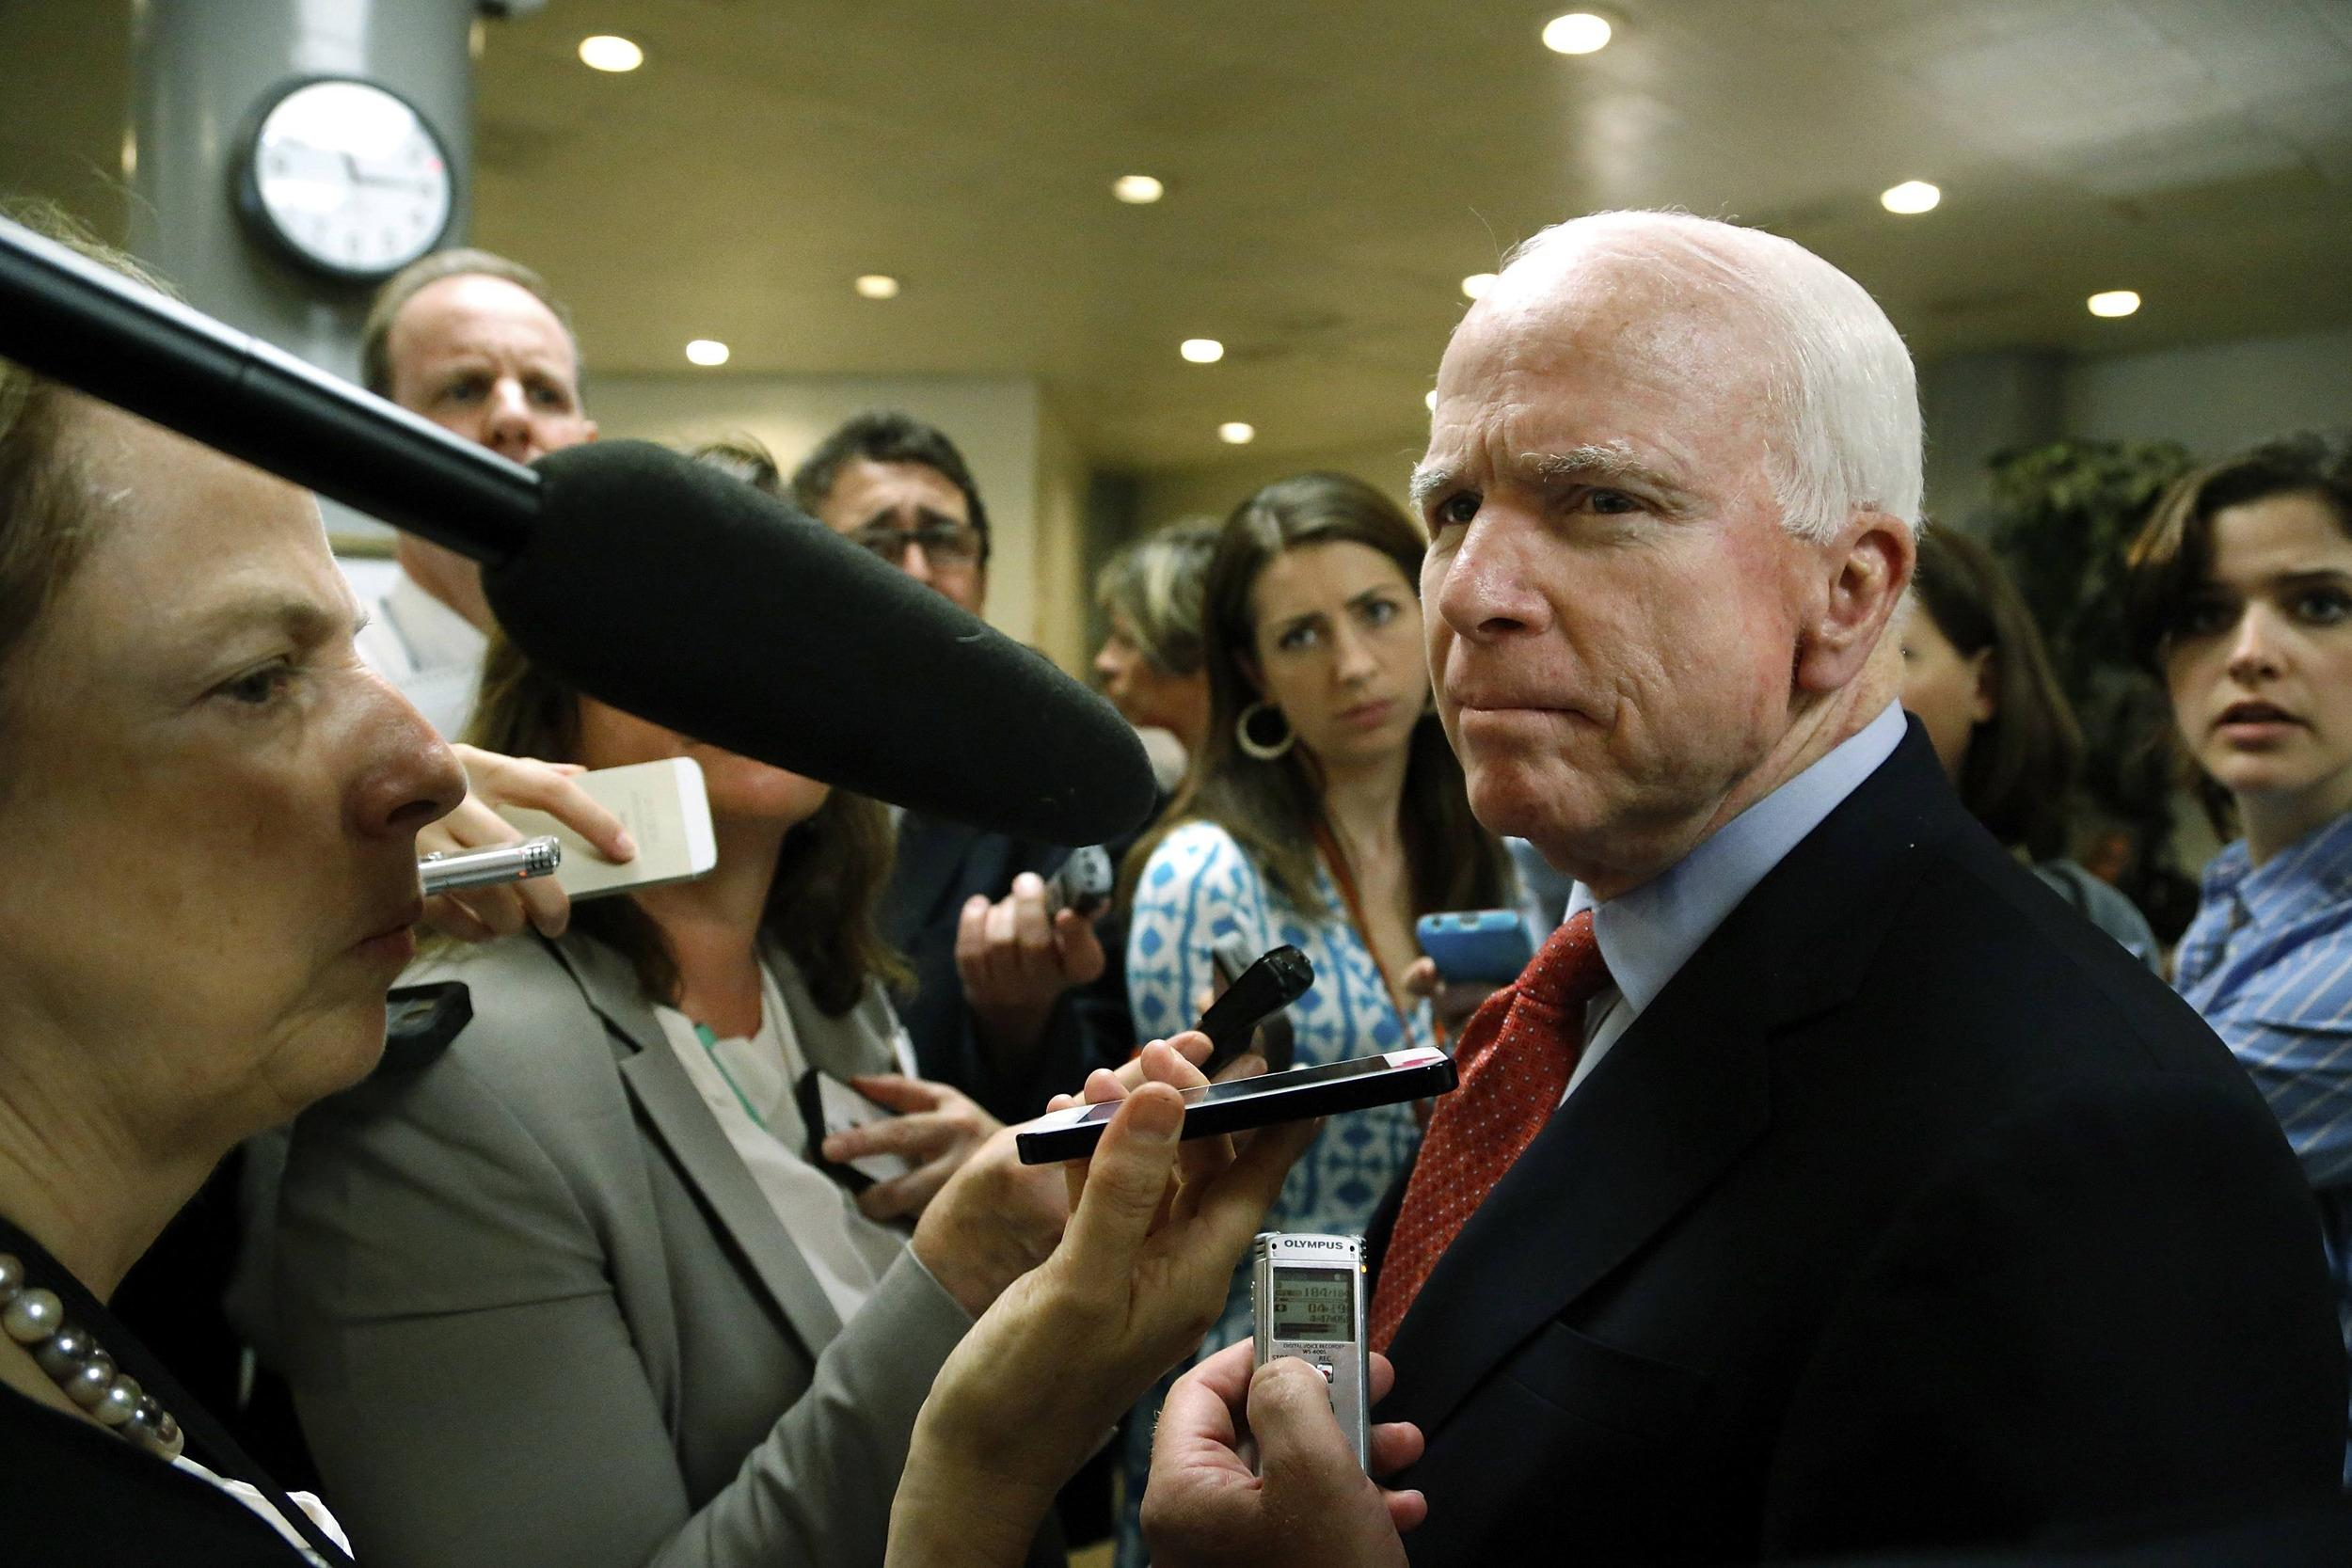 Image: McCain talks to reporters after a closed-door Senate Armed Services Committee briefing on the Bergdahl prisoner swap at the U.S. Capitol in Washington